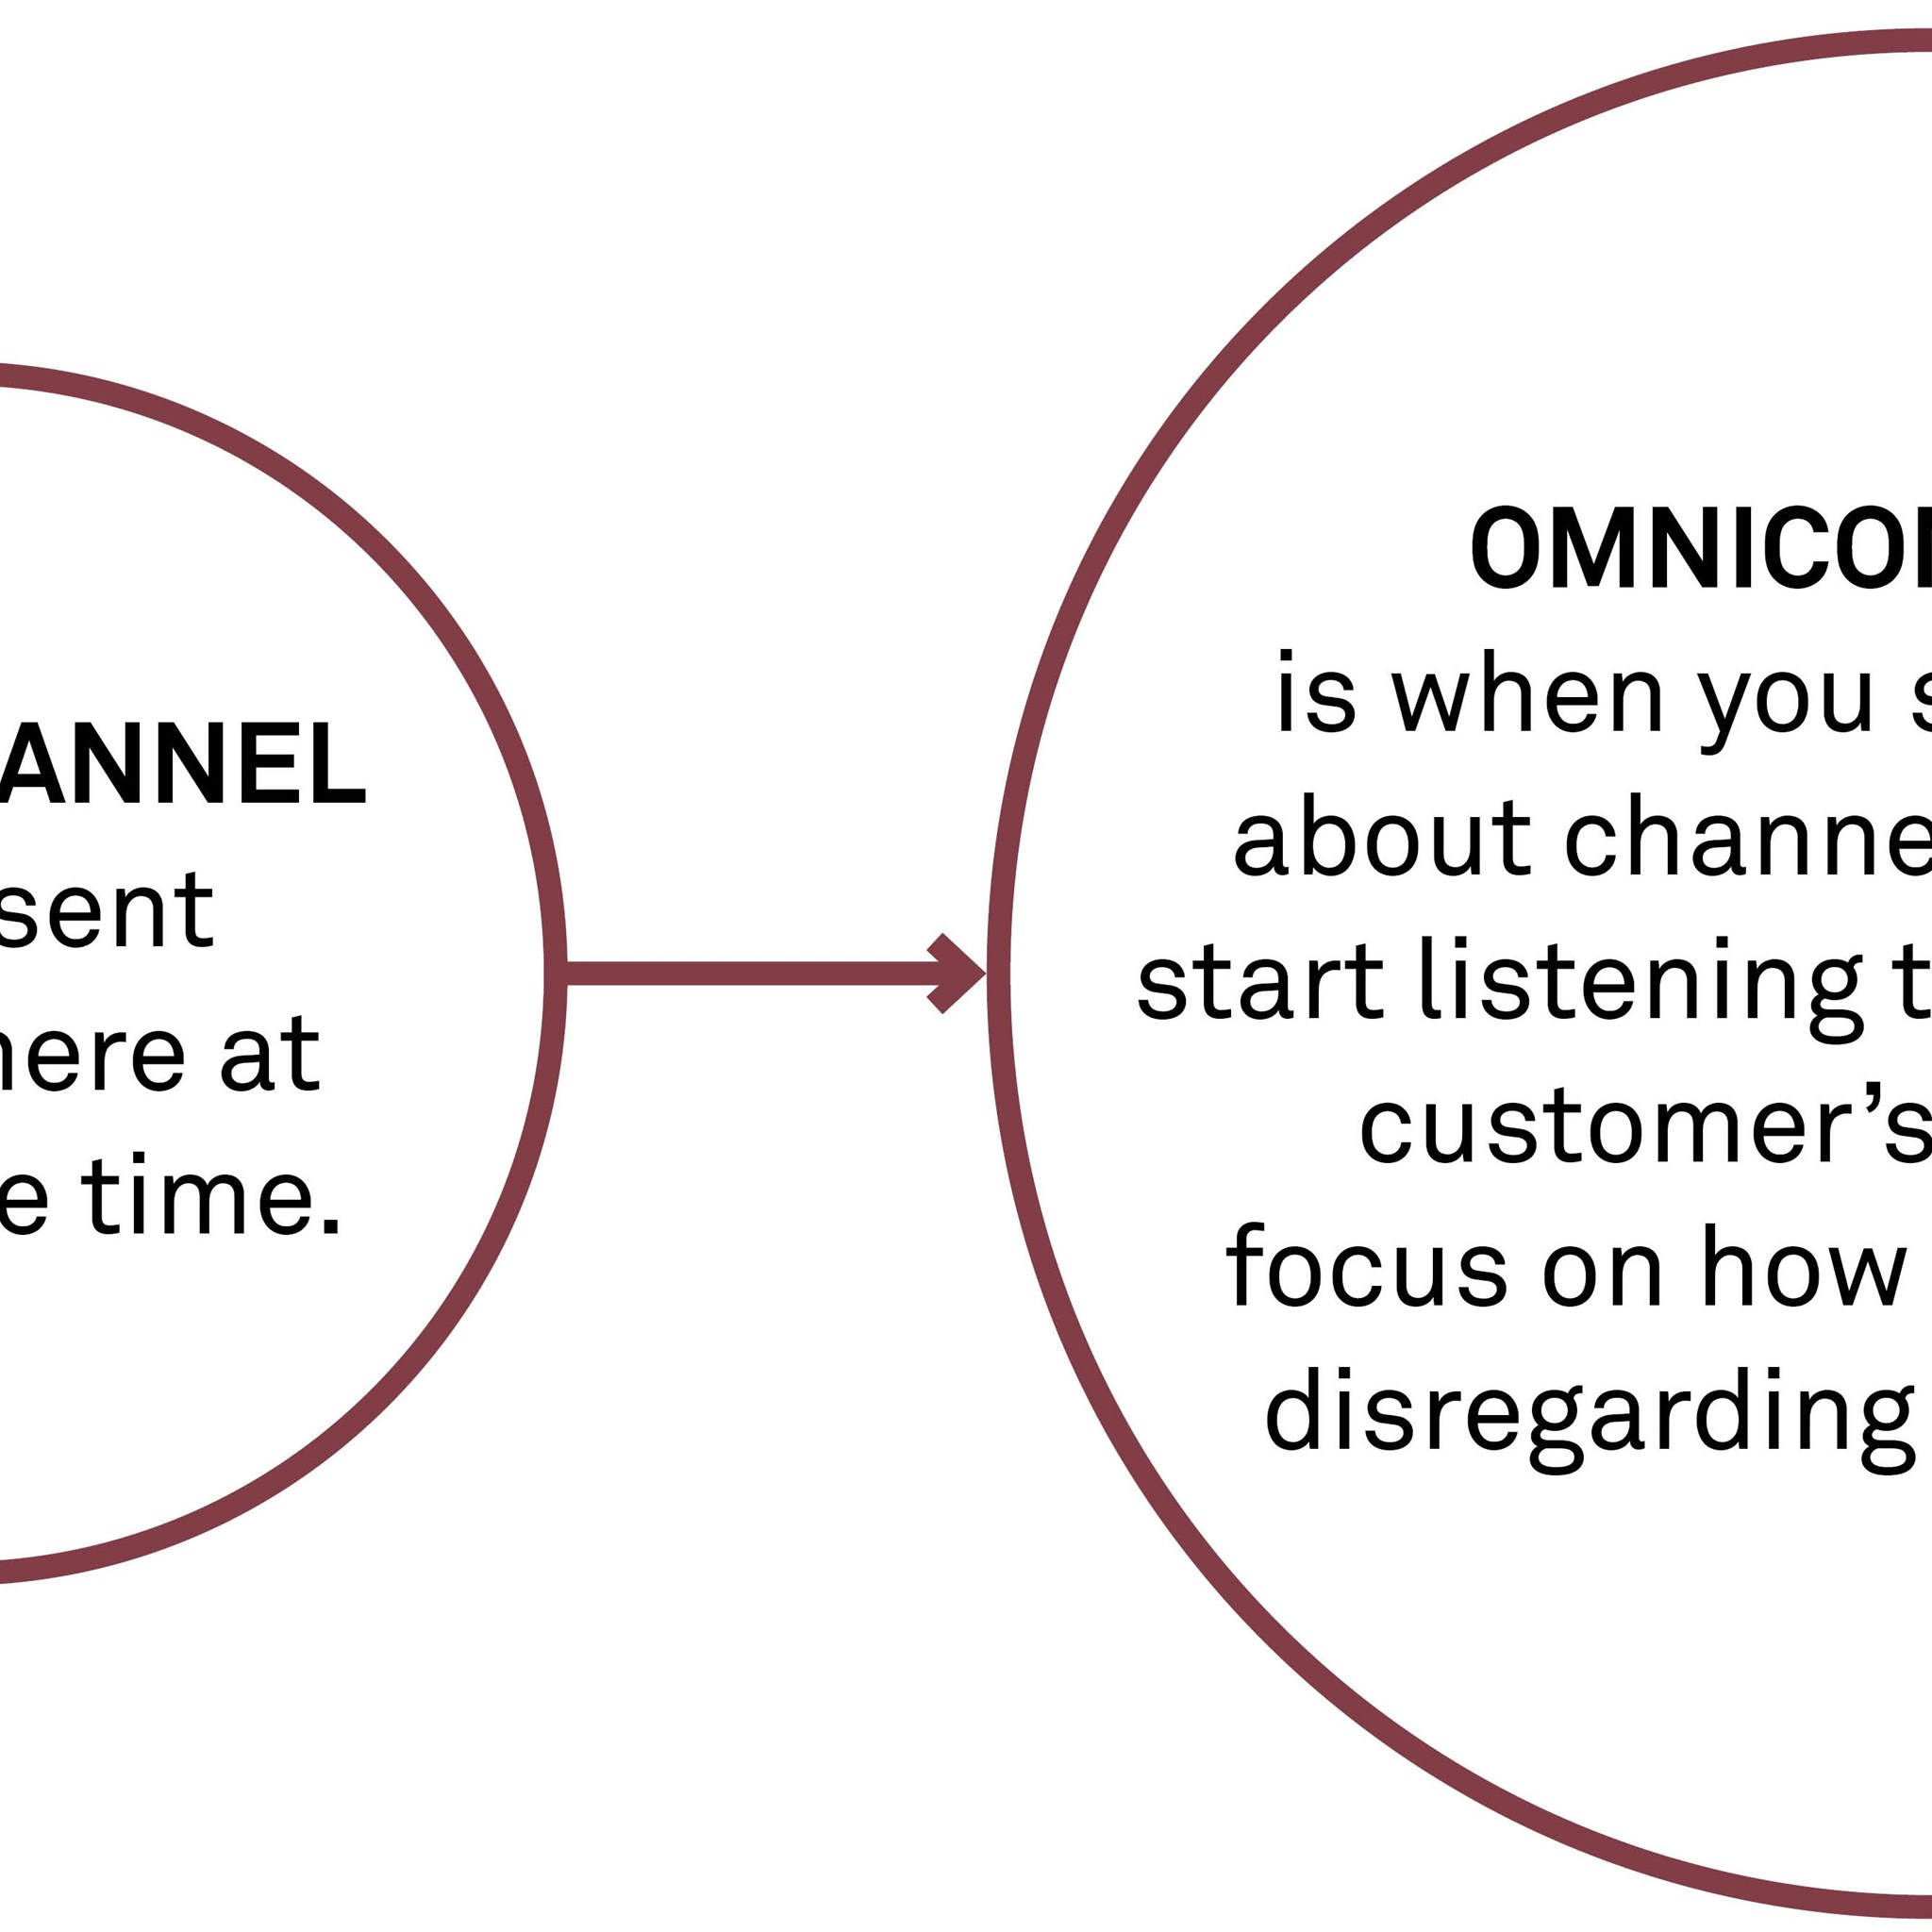 Going from omnichannel to omnicommerce